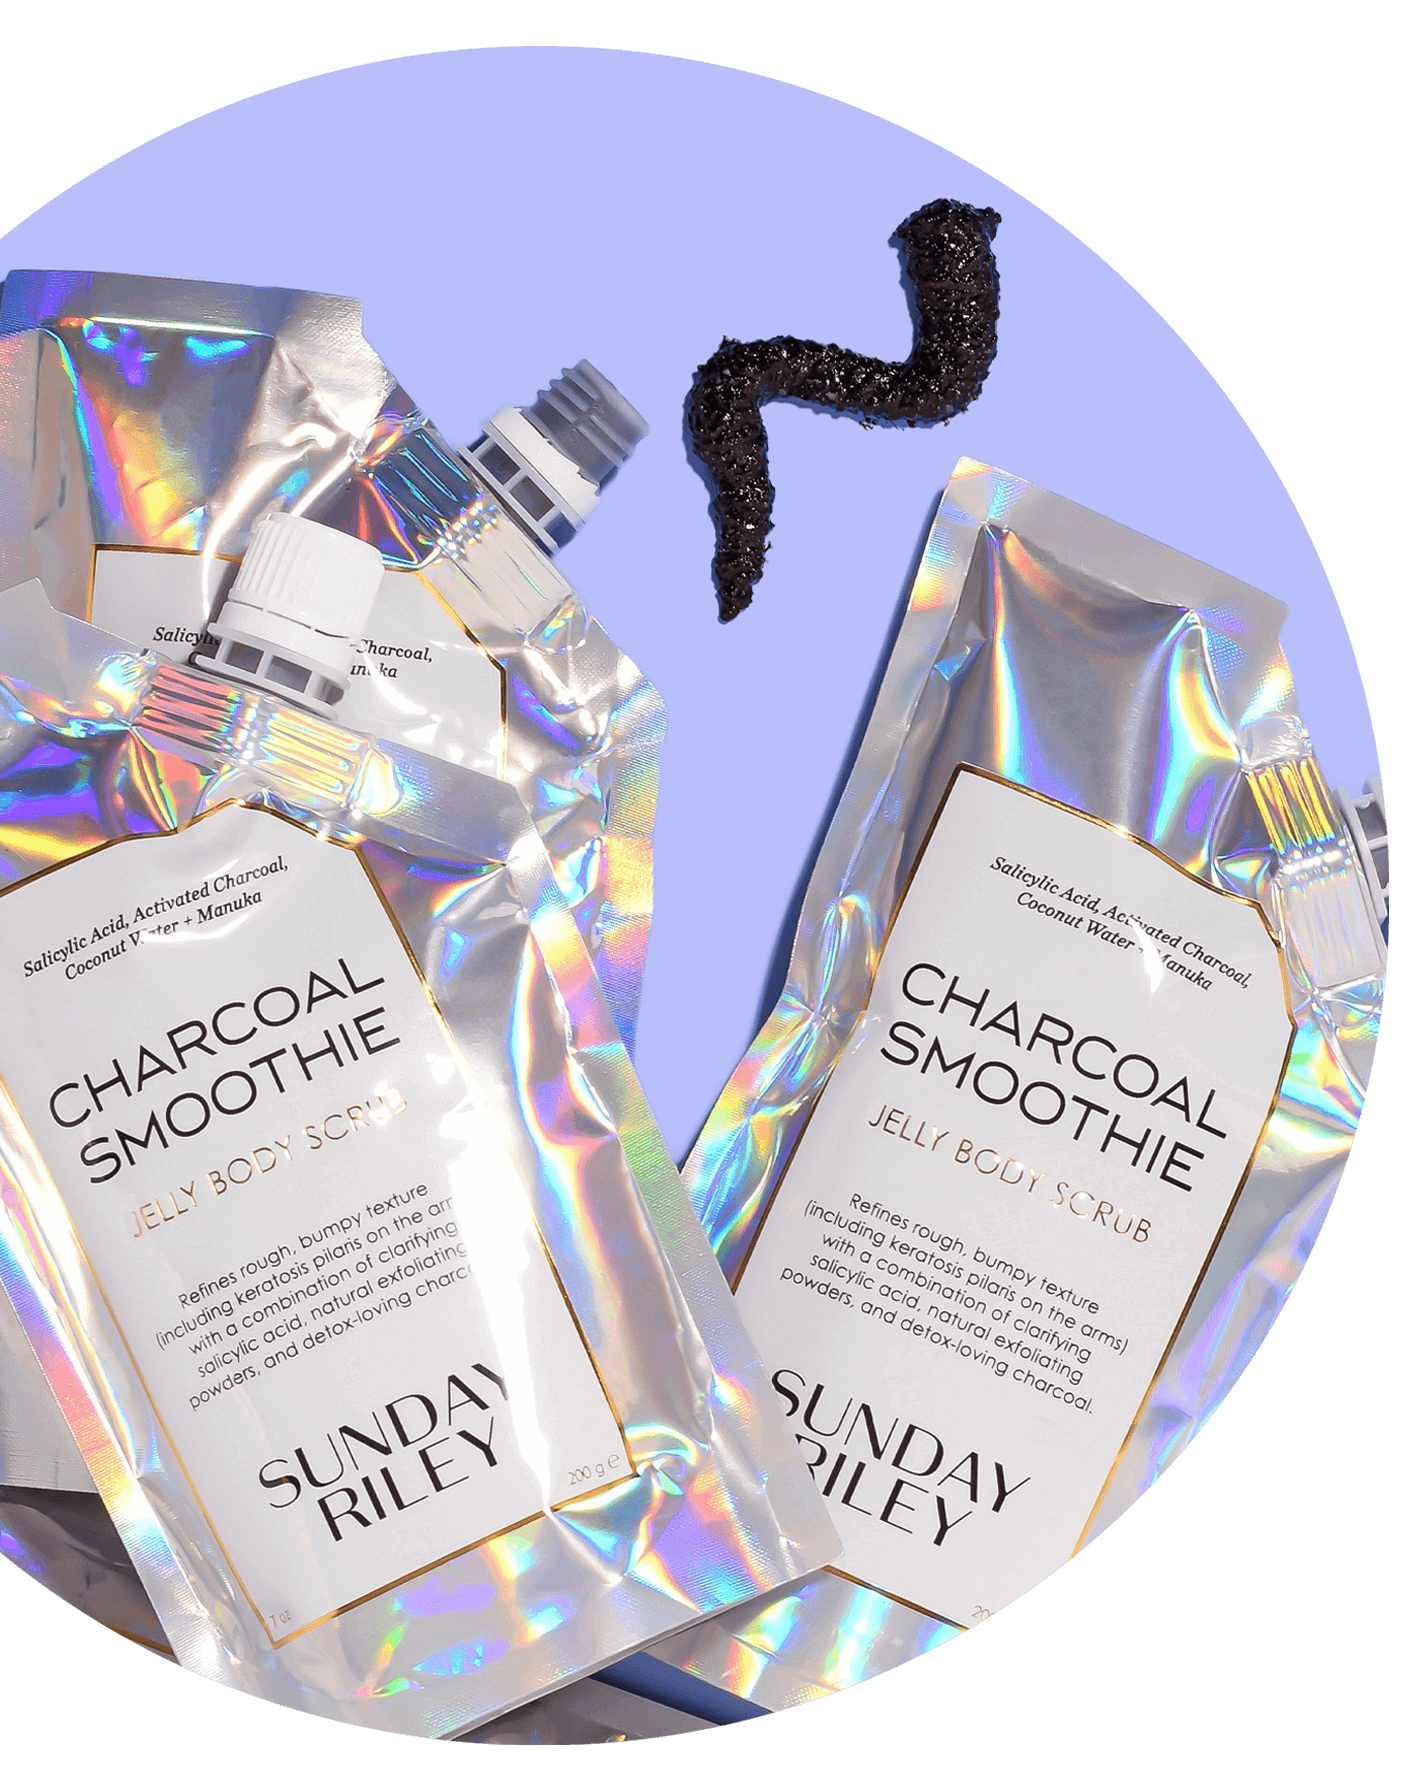 charcoal smoothie jelly body scrub packs with goop on purple background